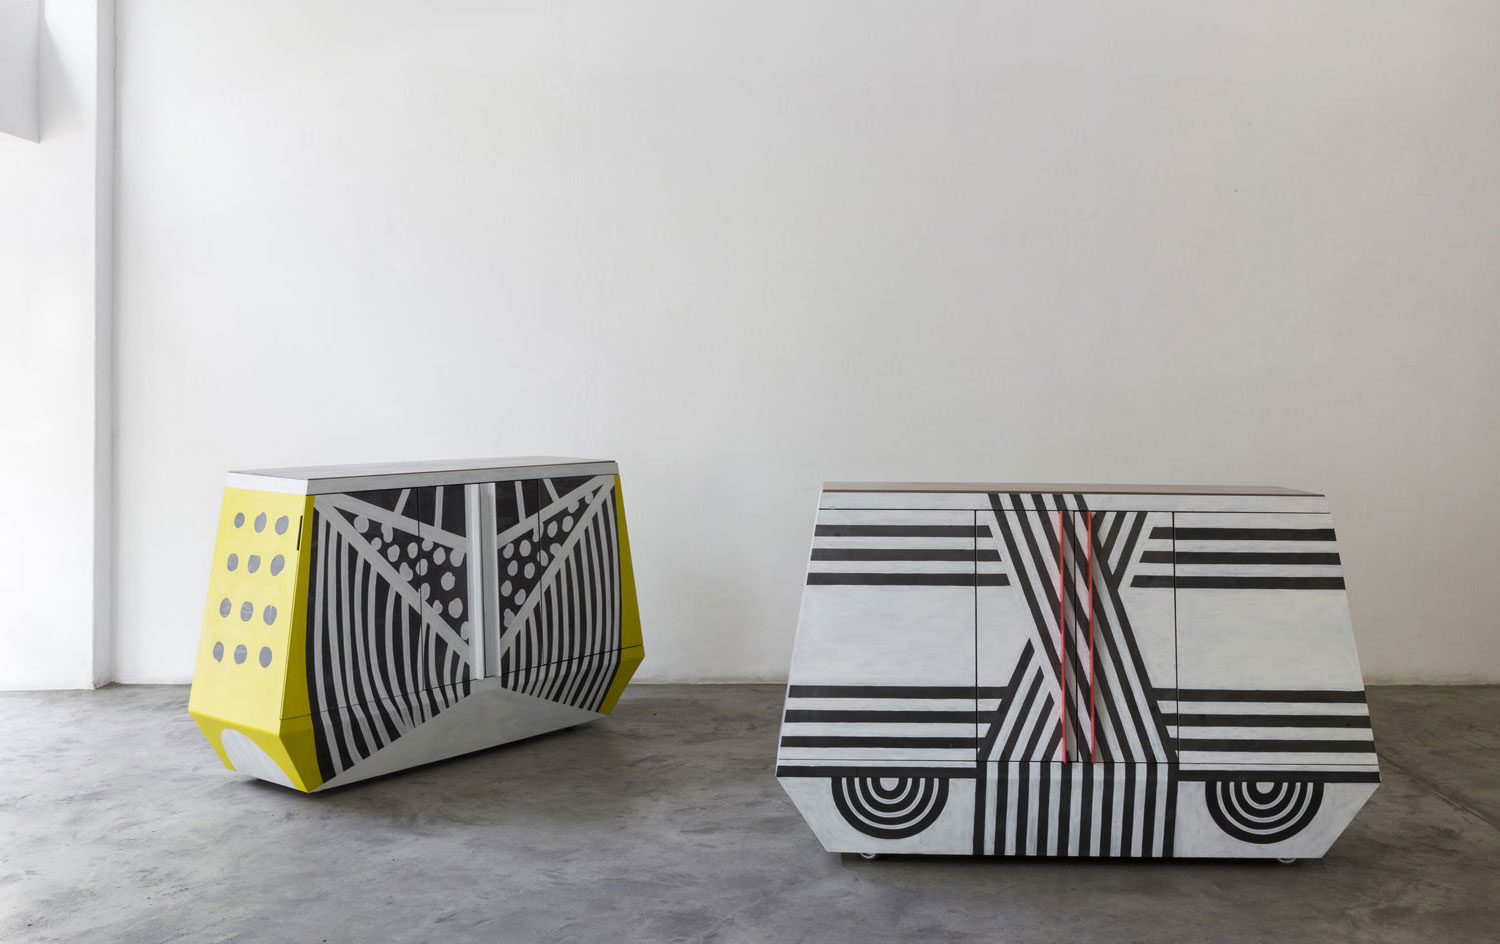 Boomerange Bench Design Days Dubai 2015 | Yellowtrace